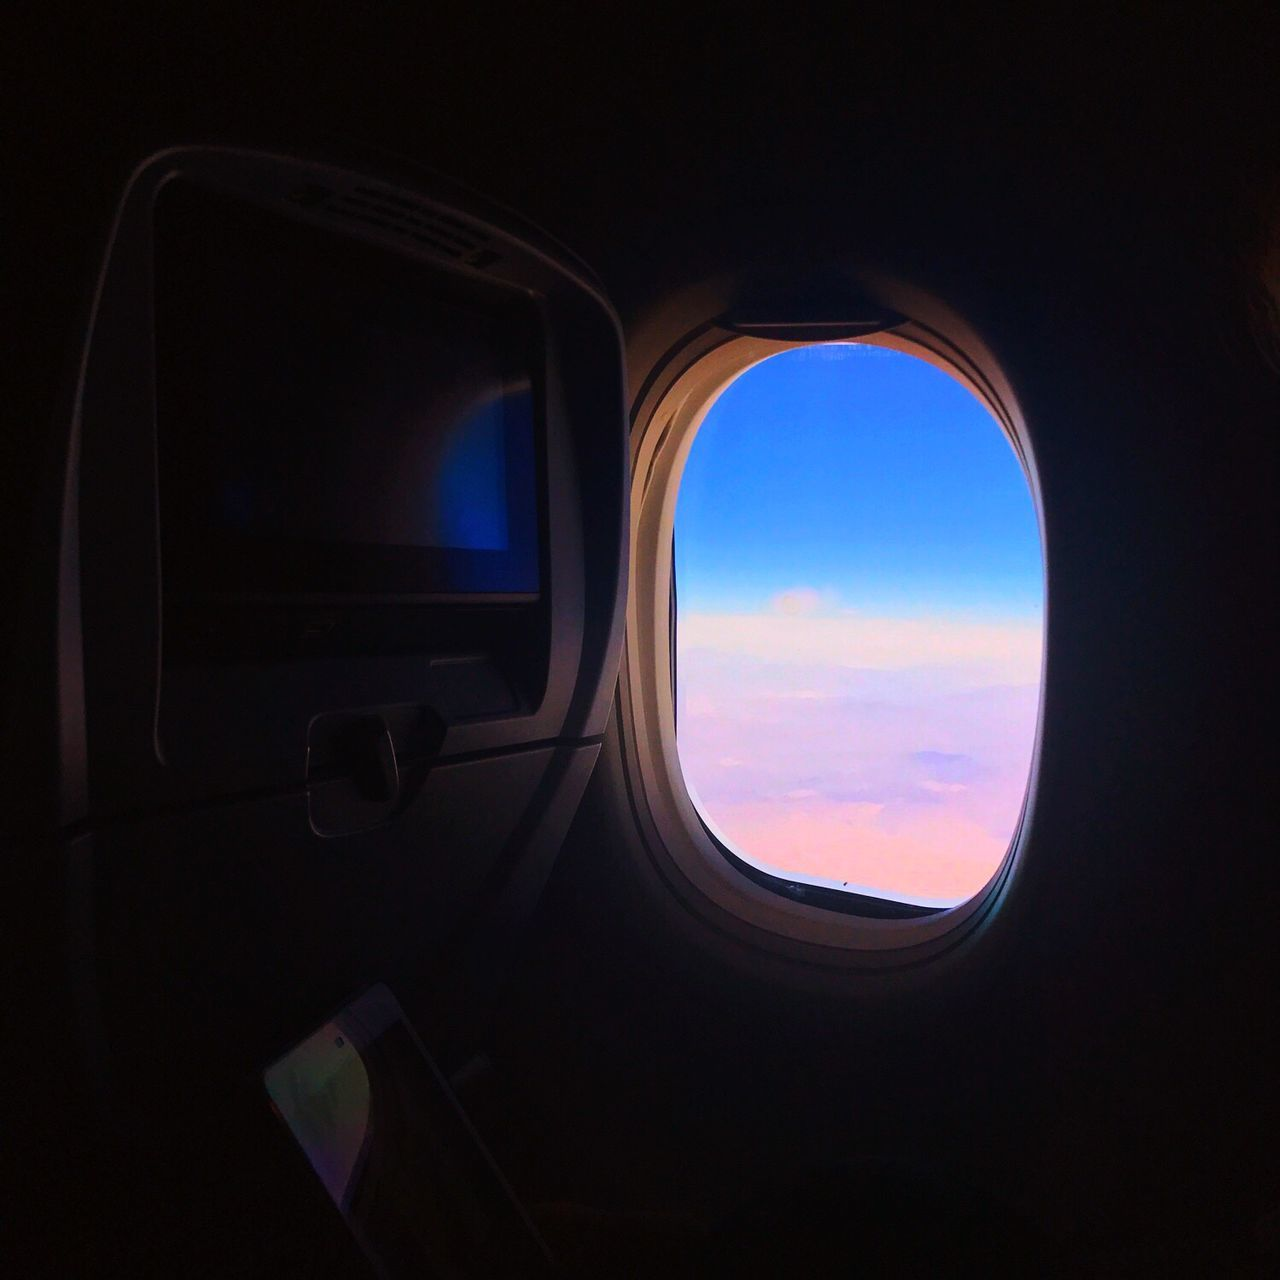 window, vehicle interior, sky, transportation, indoors, airplane, travel, no people, cloud - sky, day